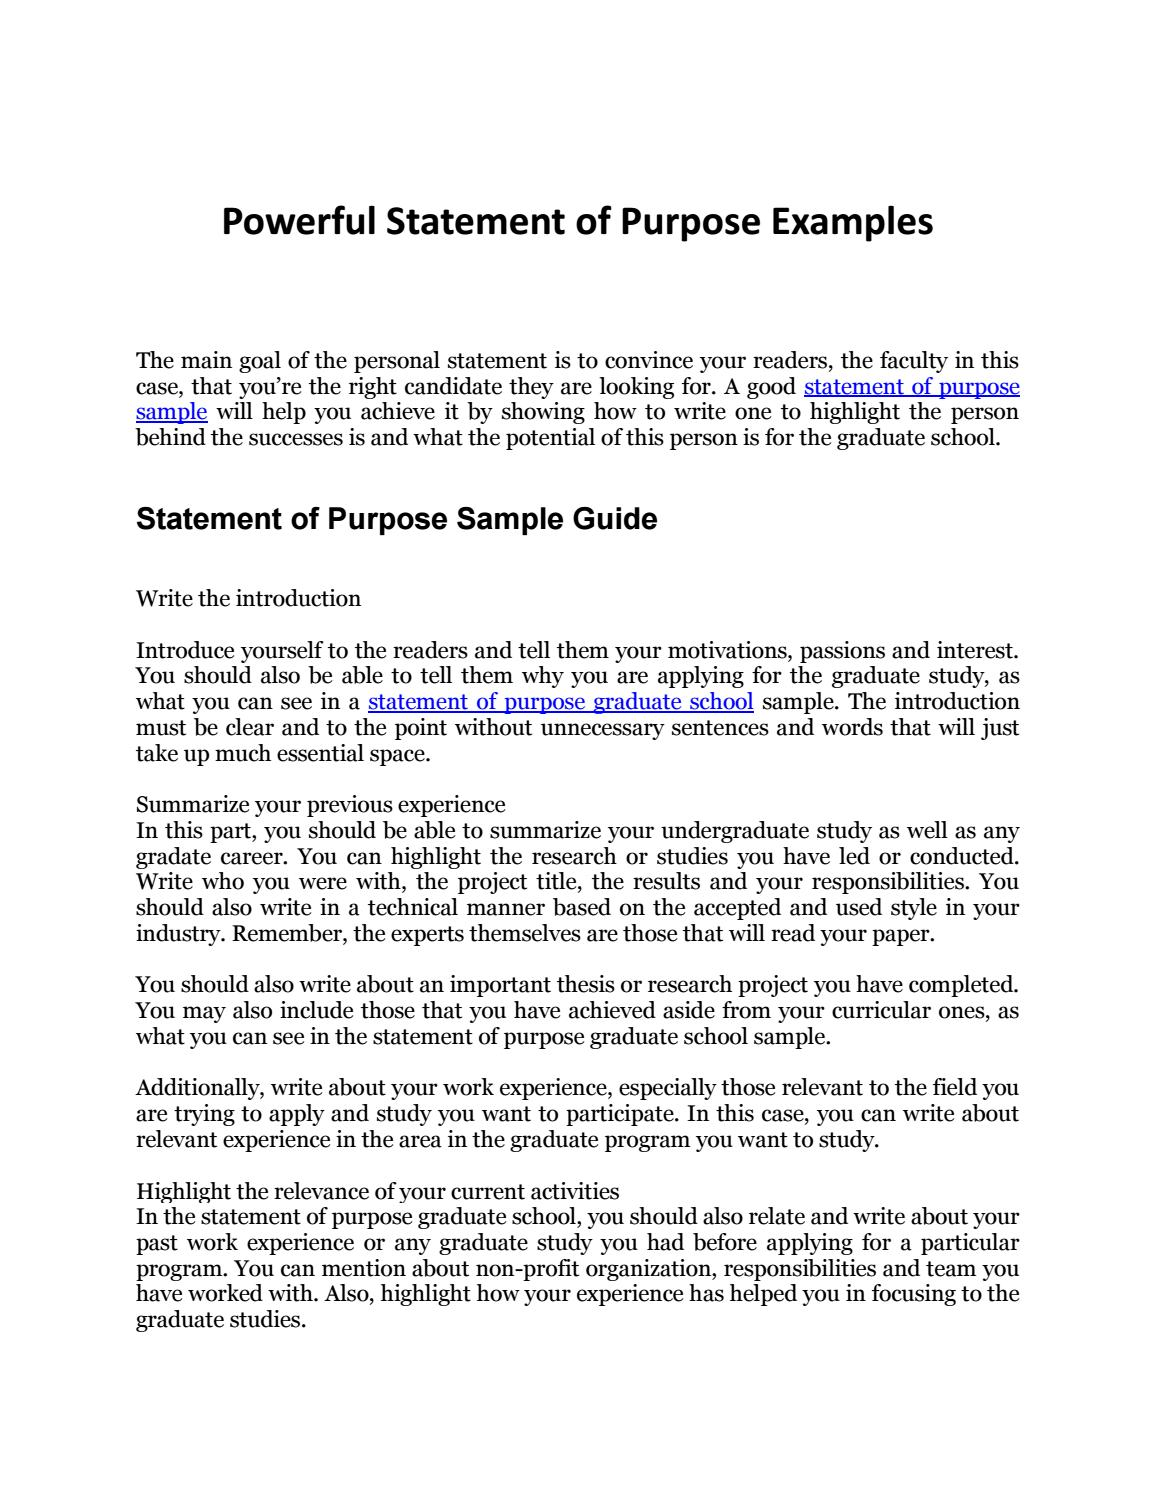 High Quality Statement Of Purpose Sample: Your Complete Guide To An Awesome SOP By  Samples SOP   Issuu